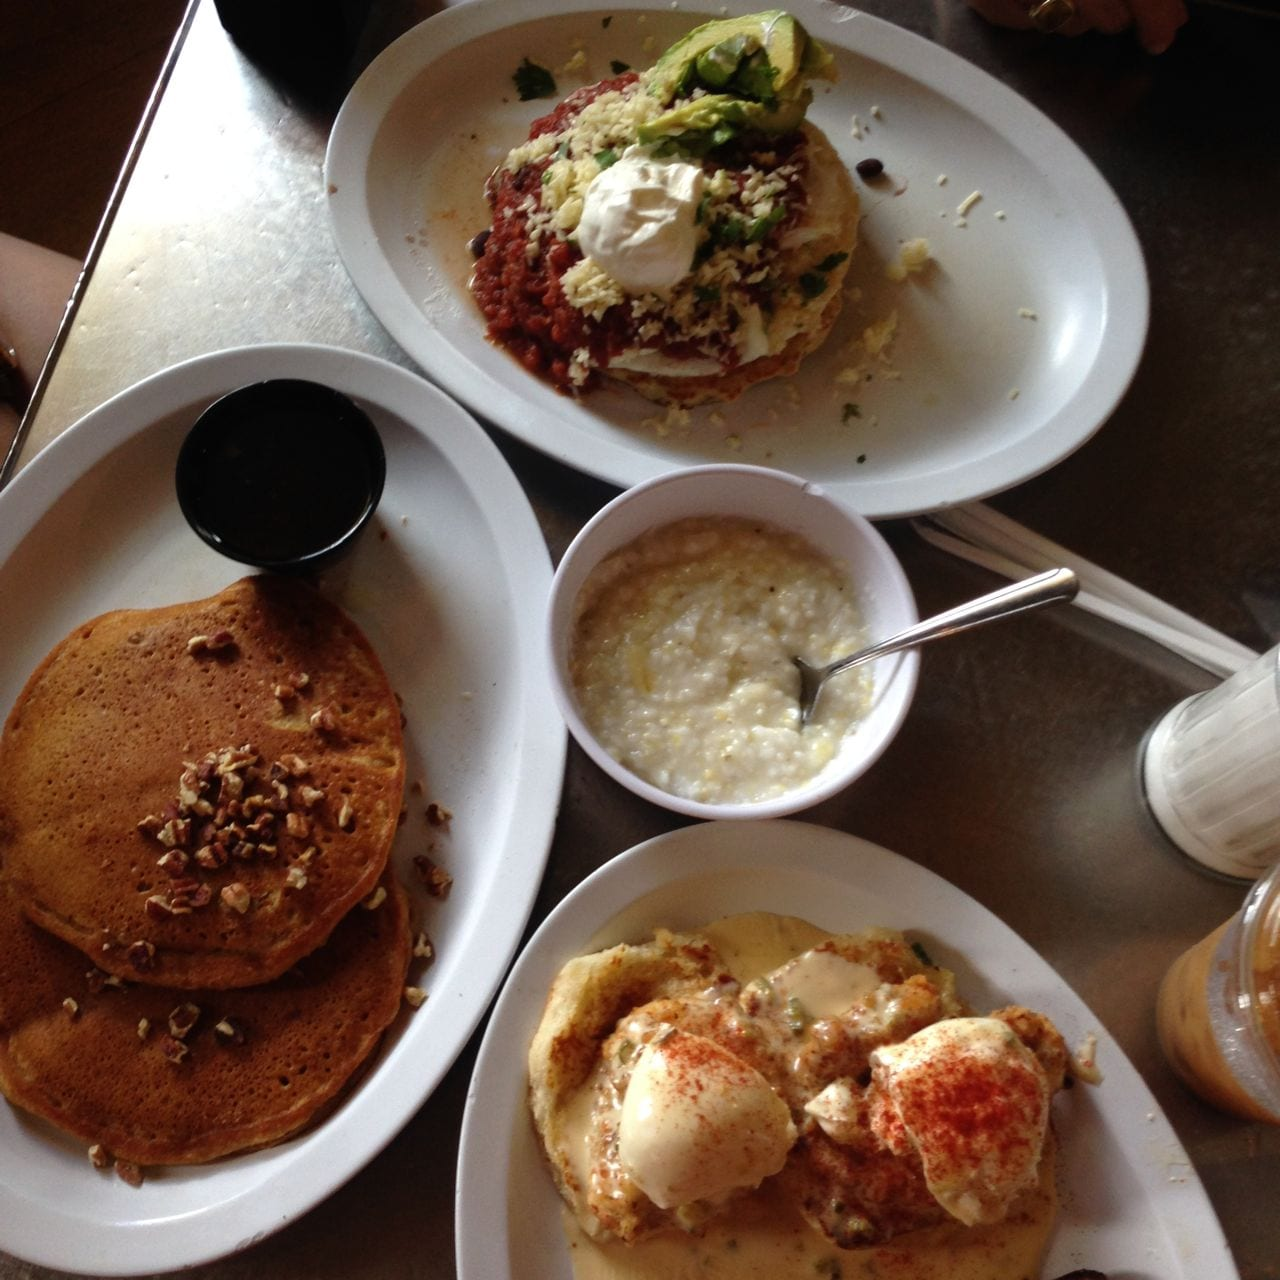 Cilantro Corn Pancakes, Fried Chicken Benedict and Sweet Potato Pancakes - you can't go wrong!